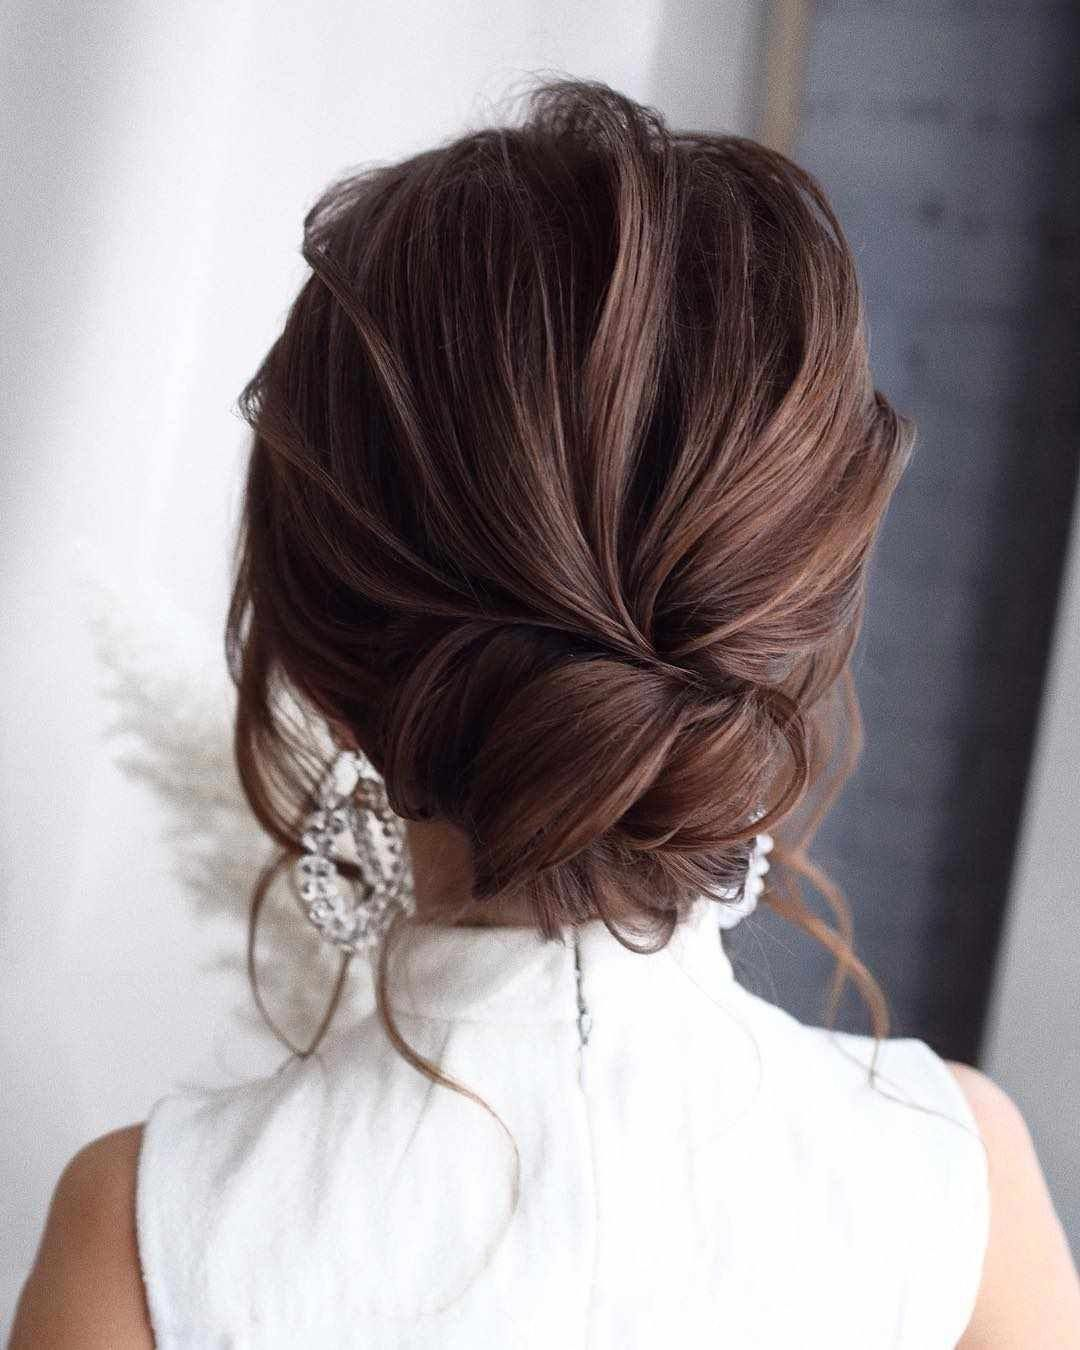 Prom Hairstyles For Long Hair - #modernhairs #promhairs - Hairstyles -  Hairstyles 2019 #promhairstyles | Long hair styles, Hair styles, Wedding  hair down